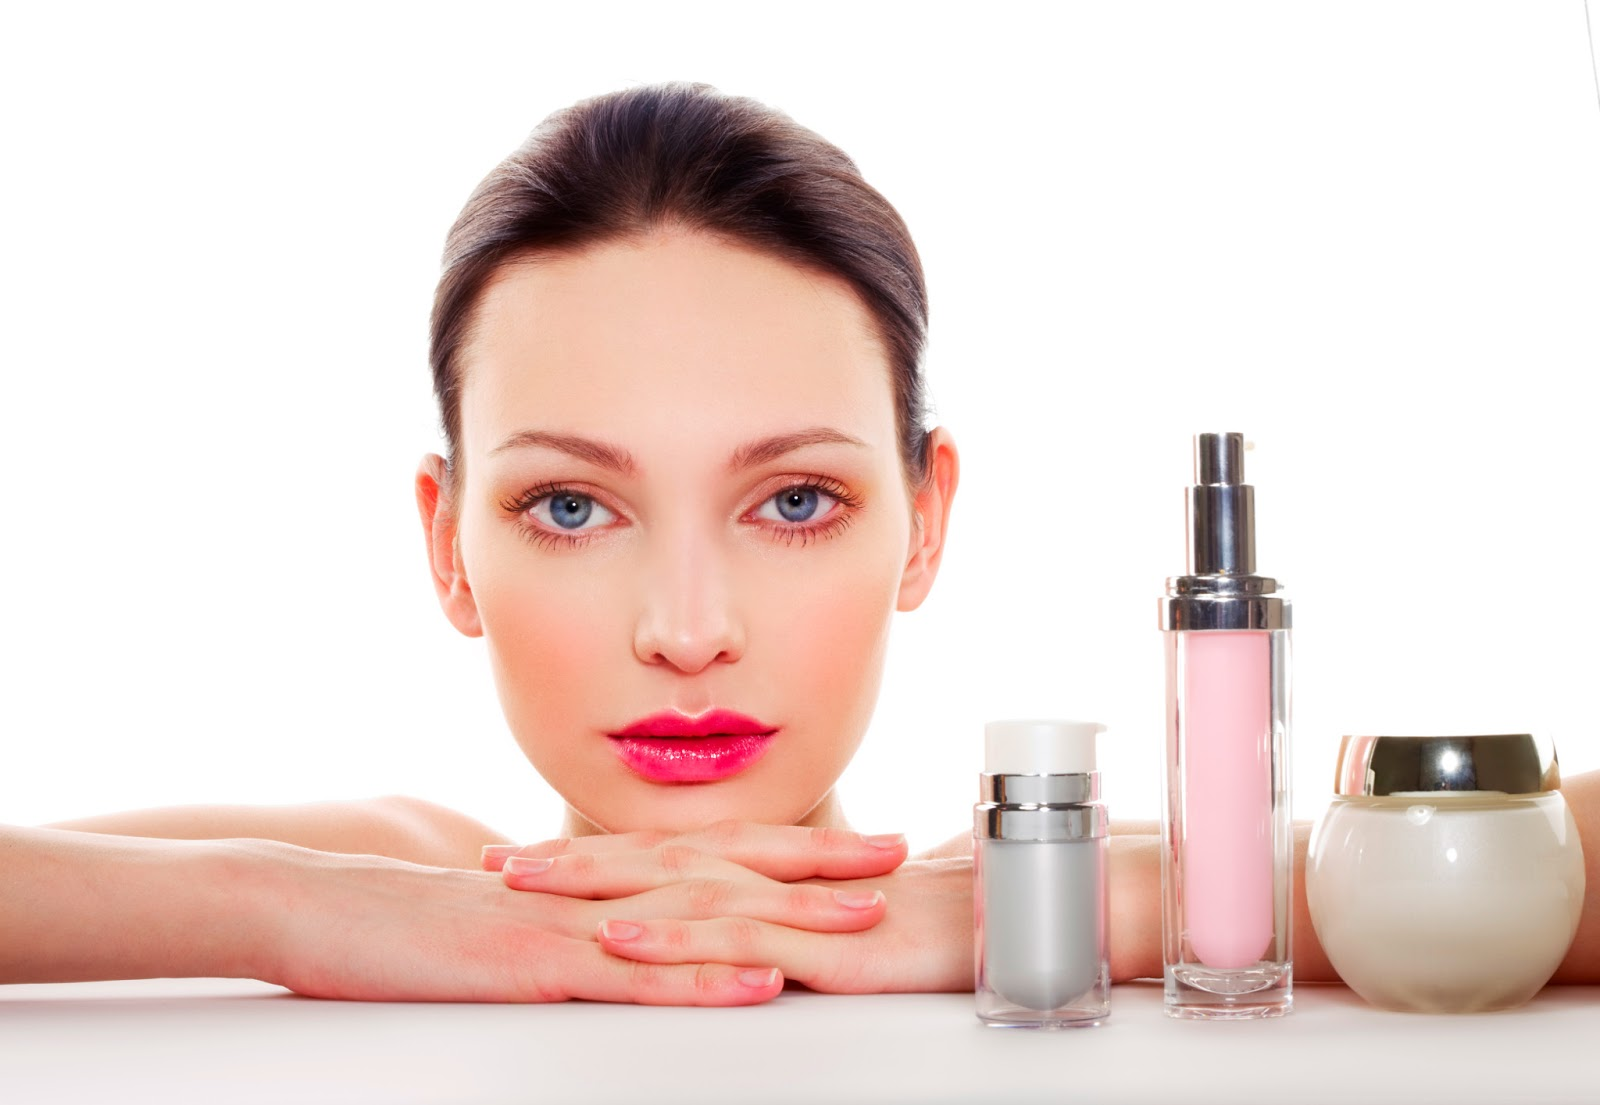 Put Your Best Face Forward With These Beauty Hints!